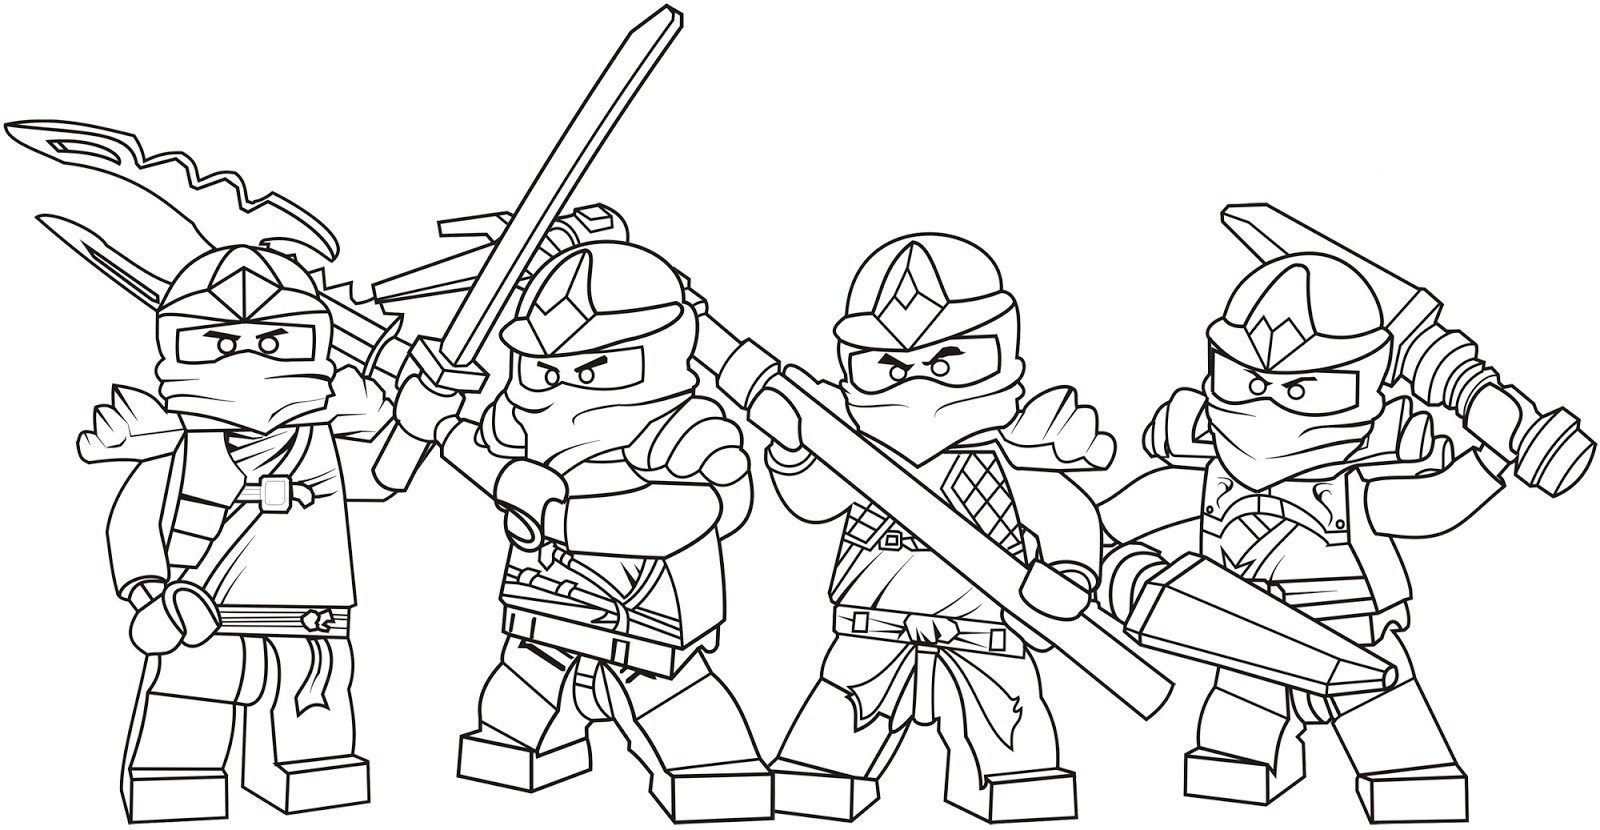 Best ideas about Ninjago Coloring Pages For Kids . Save or Pin Ninjago Ninjas Coloring Coloring Pages Now.